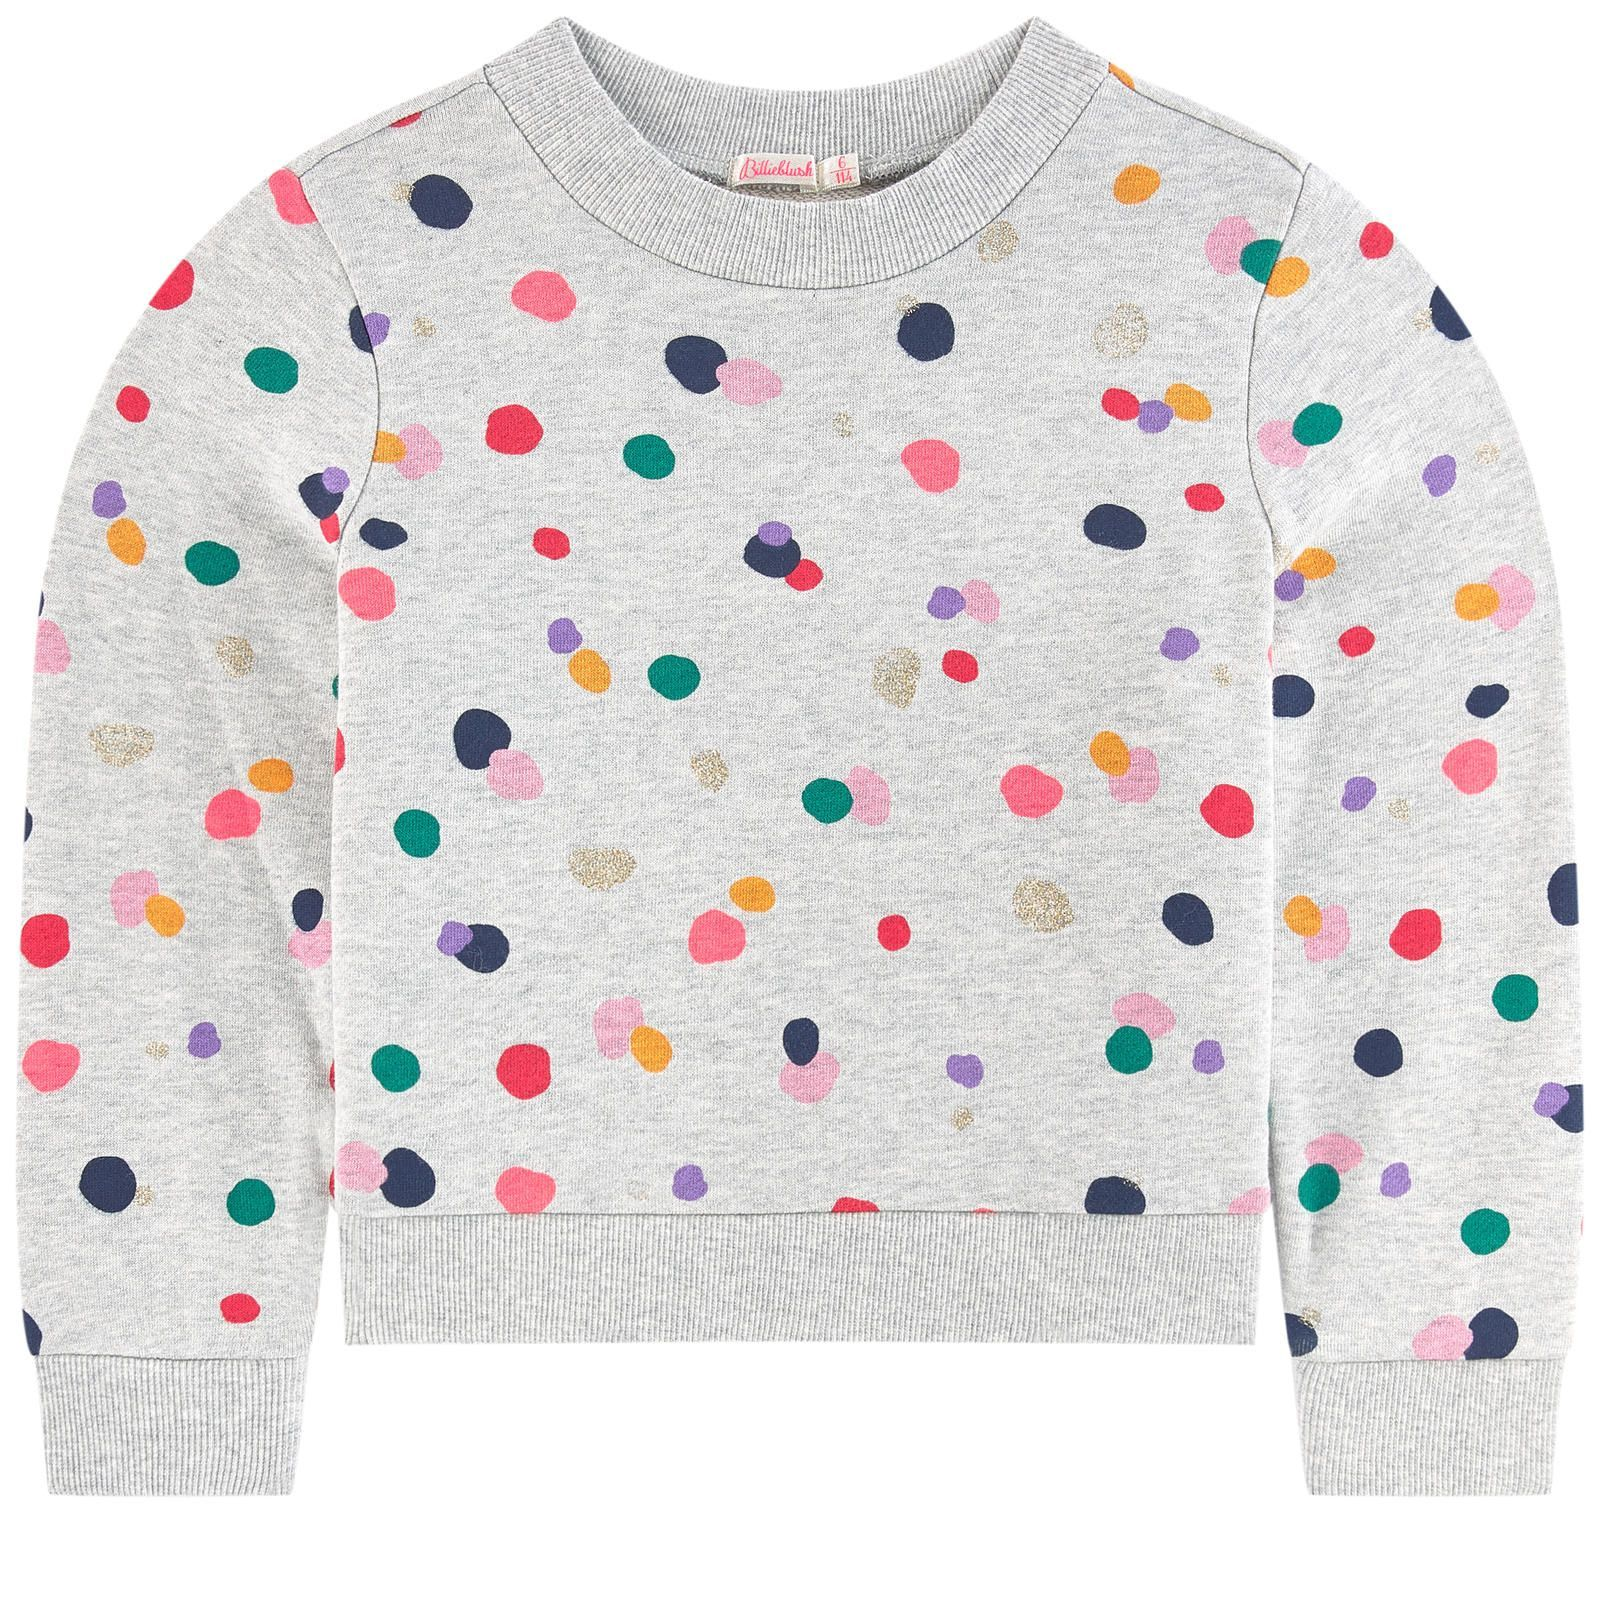 All You Need is Love and Donuts Kids Long Sleeve Crew Neck Cotton T-Shirts Sweatshirt for 2-6T Baby